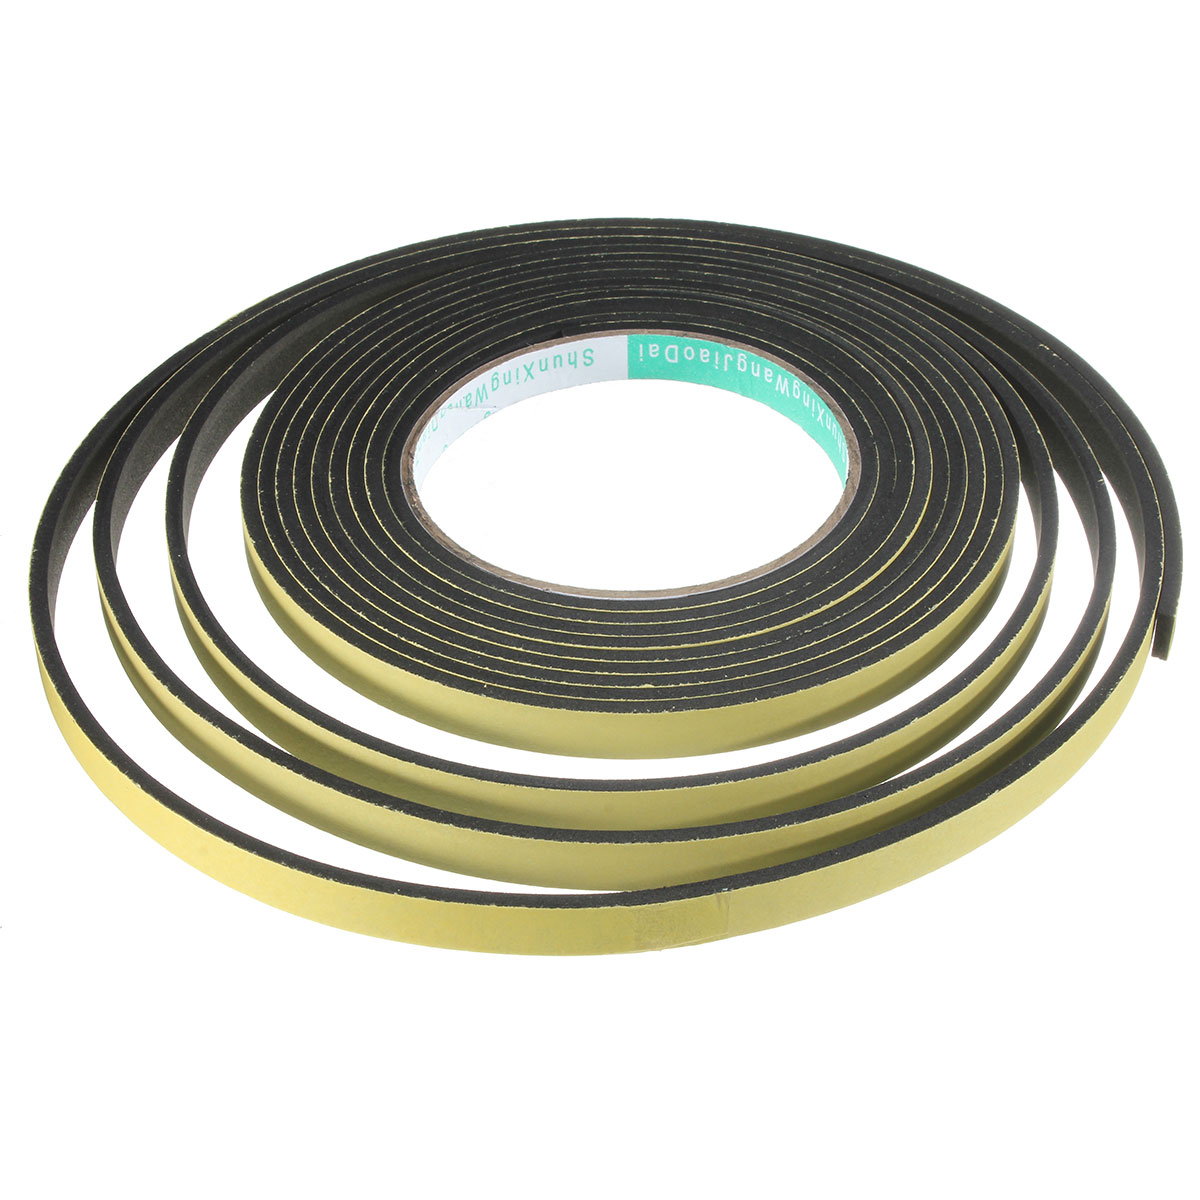 Newest 5m x 3x10mm Single Sided Adhesive Waterproof Weather Stripping Foam Sponge Rubber Strip Tape Door Seal Hot Sale 2pcs 2 5x 1cm single sided self adhesive shockproof sponge foam tape 2m length